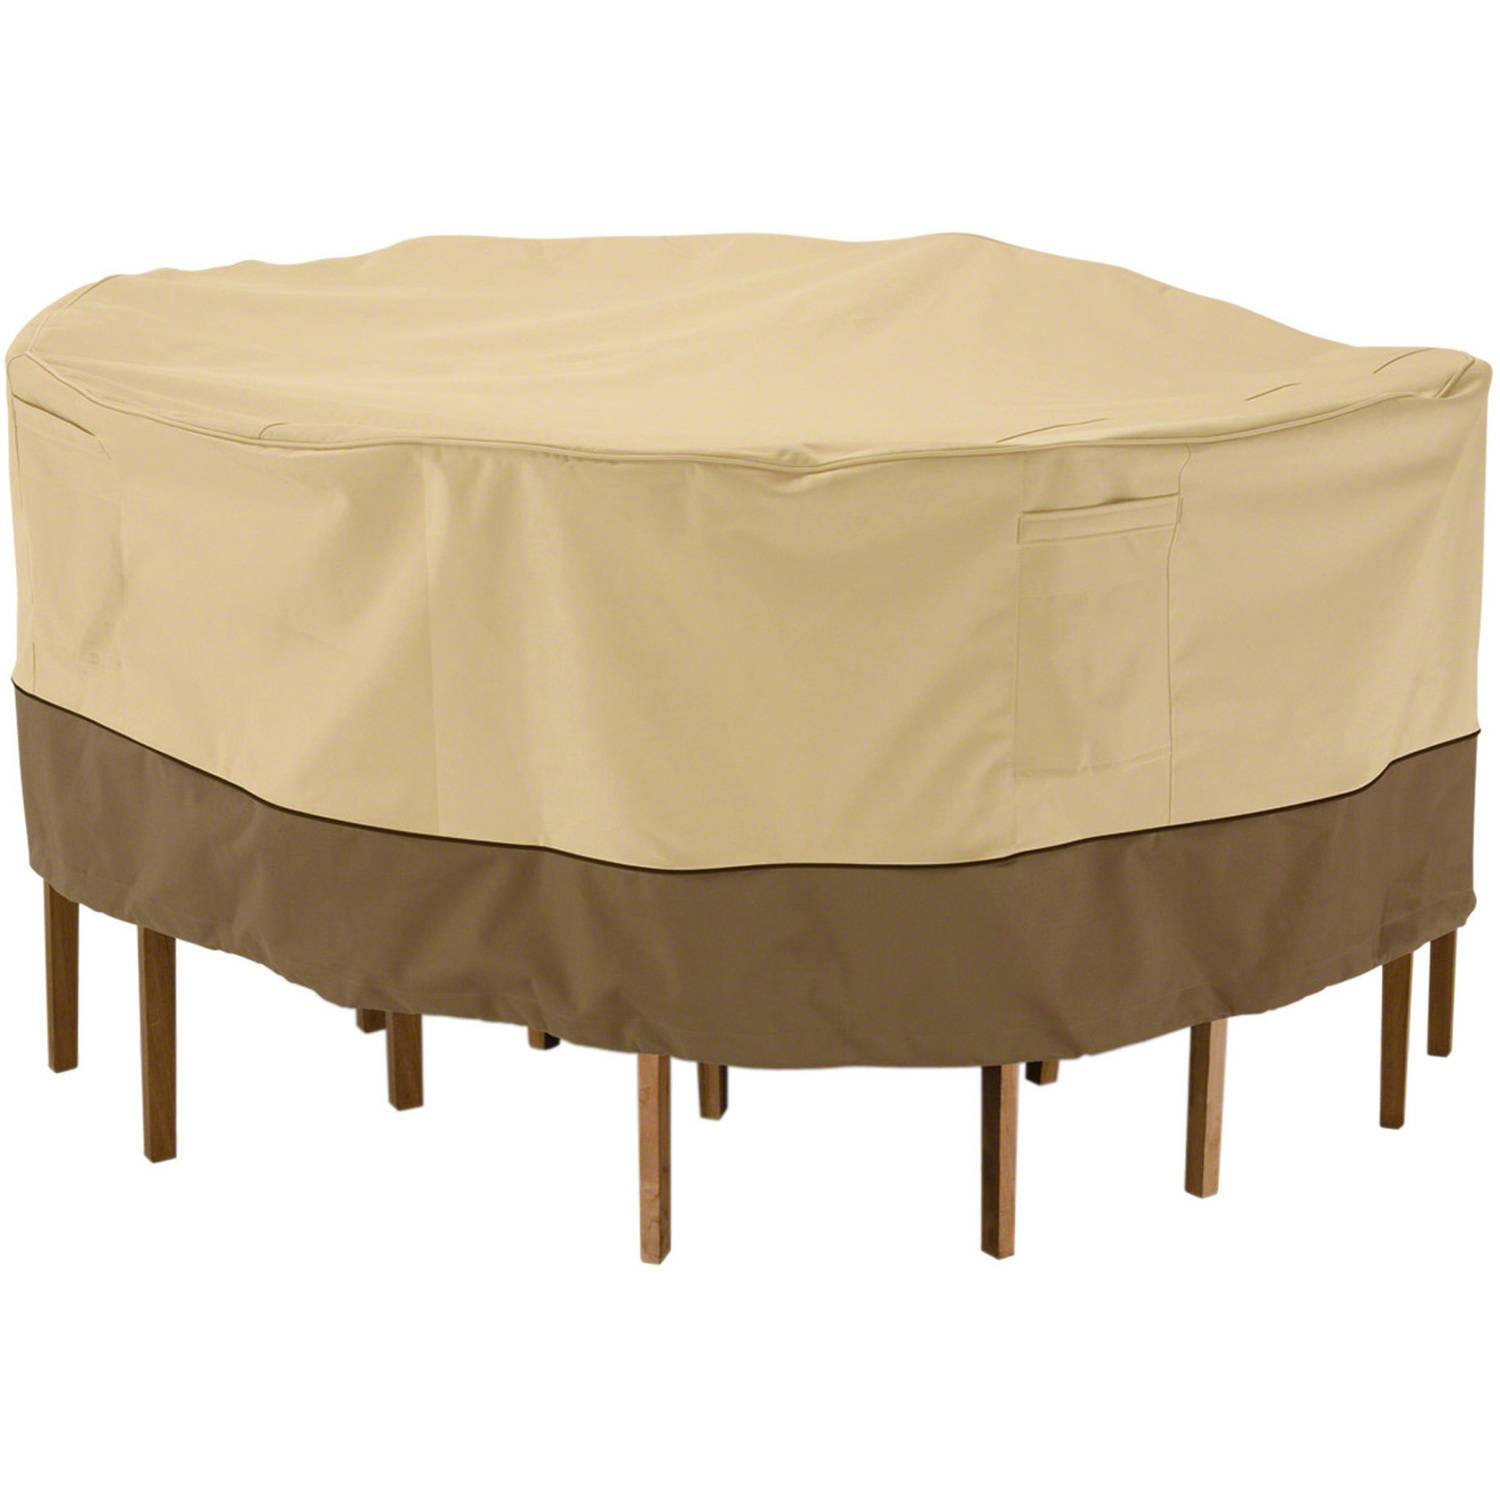 classic accessories veranda round patio table u0026 chair set cover durable and water resistant outdoor classic accessories patio furniture covers s52 patio